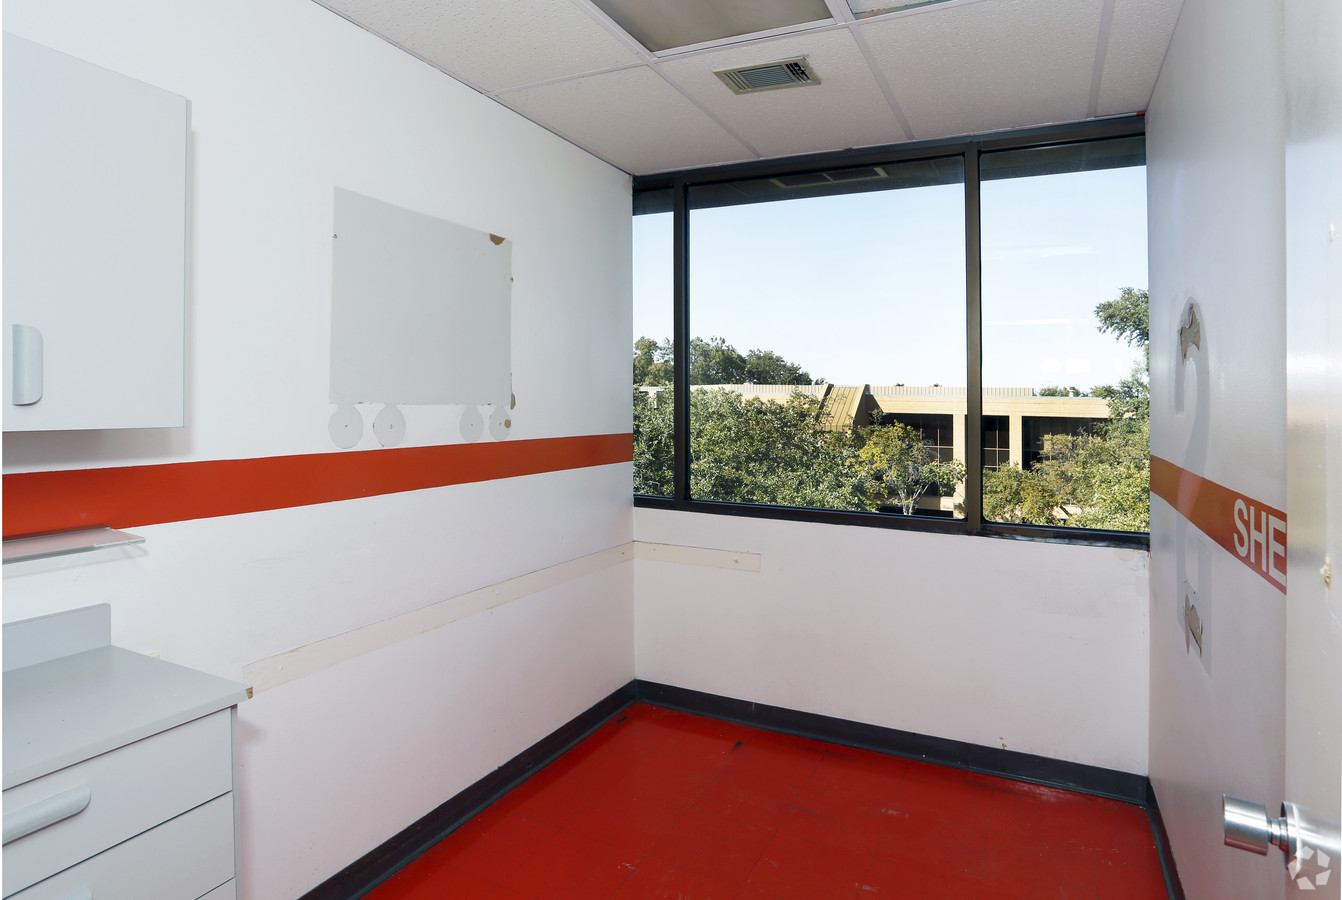 Medical Office Suite in Dallas - Suite 200 - Image 19 of 20